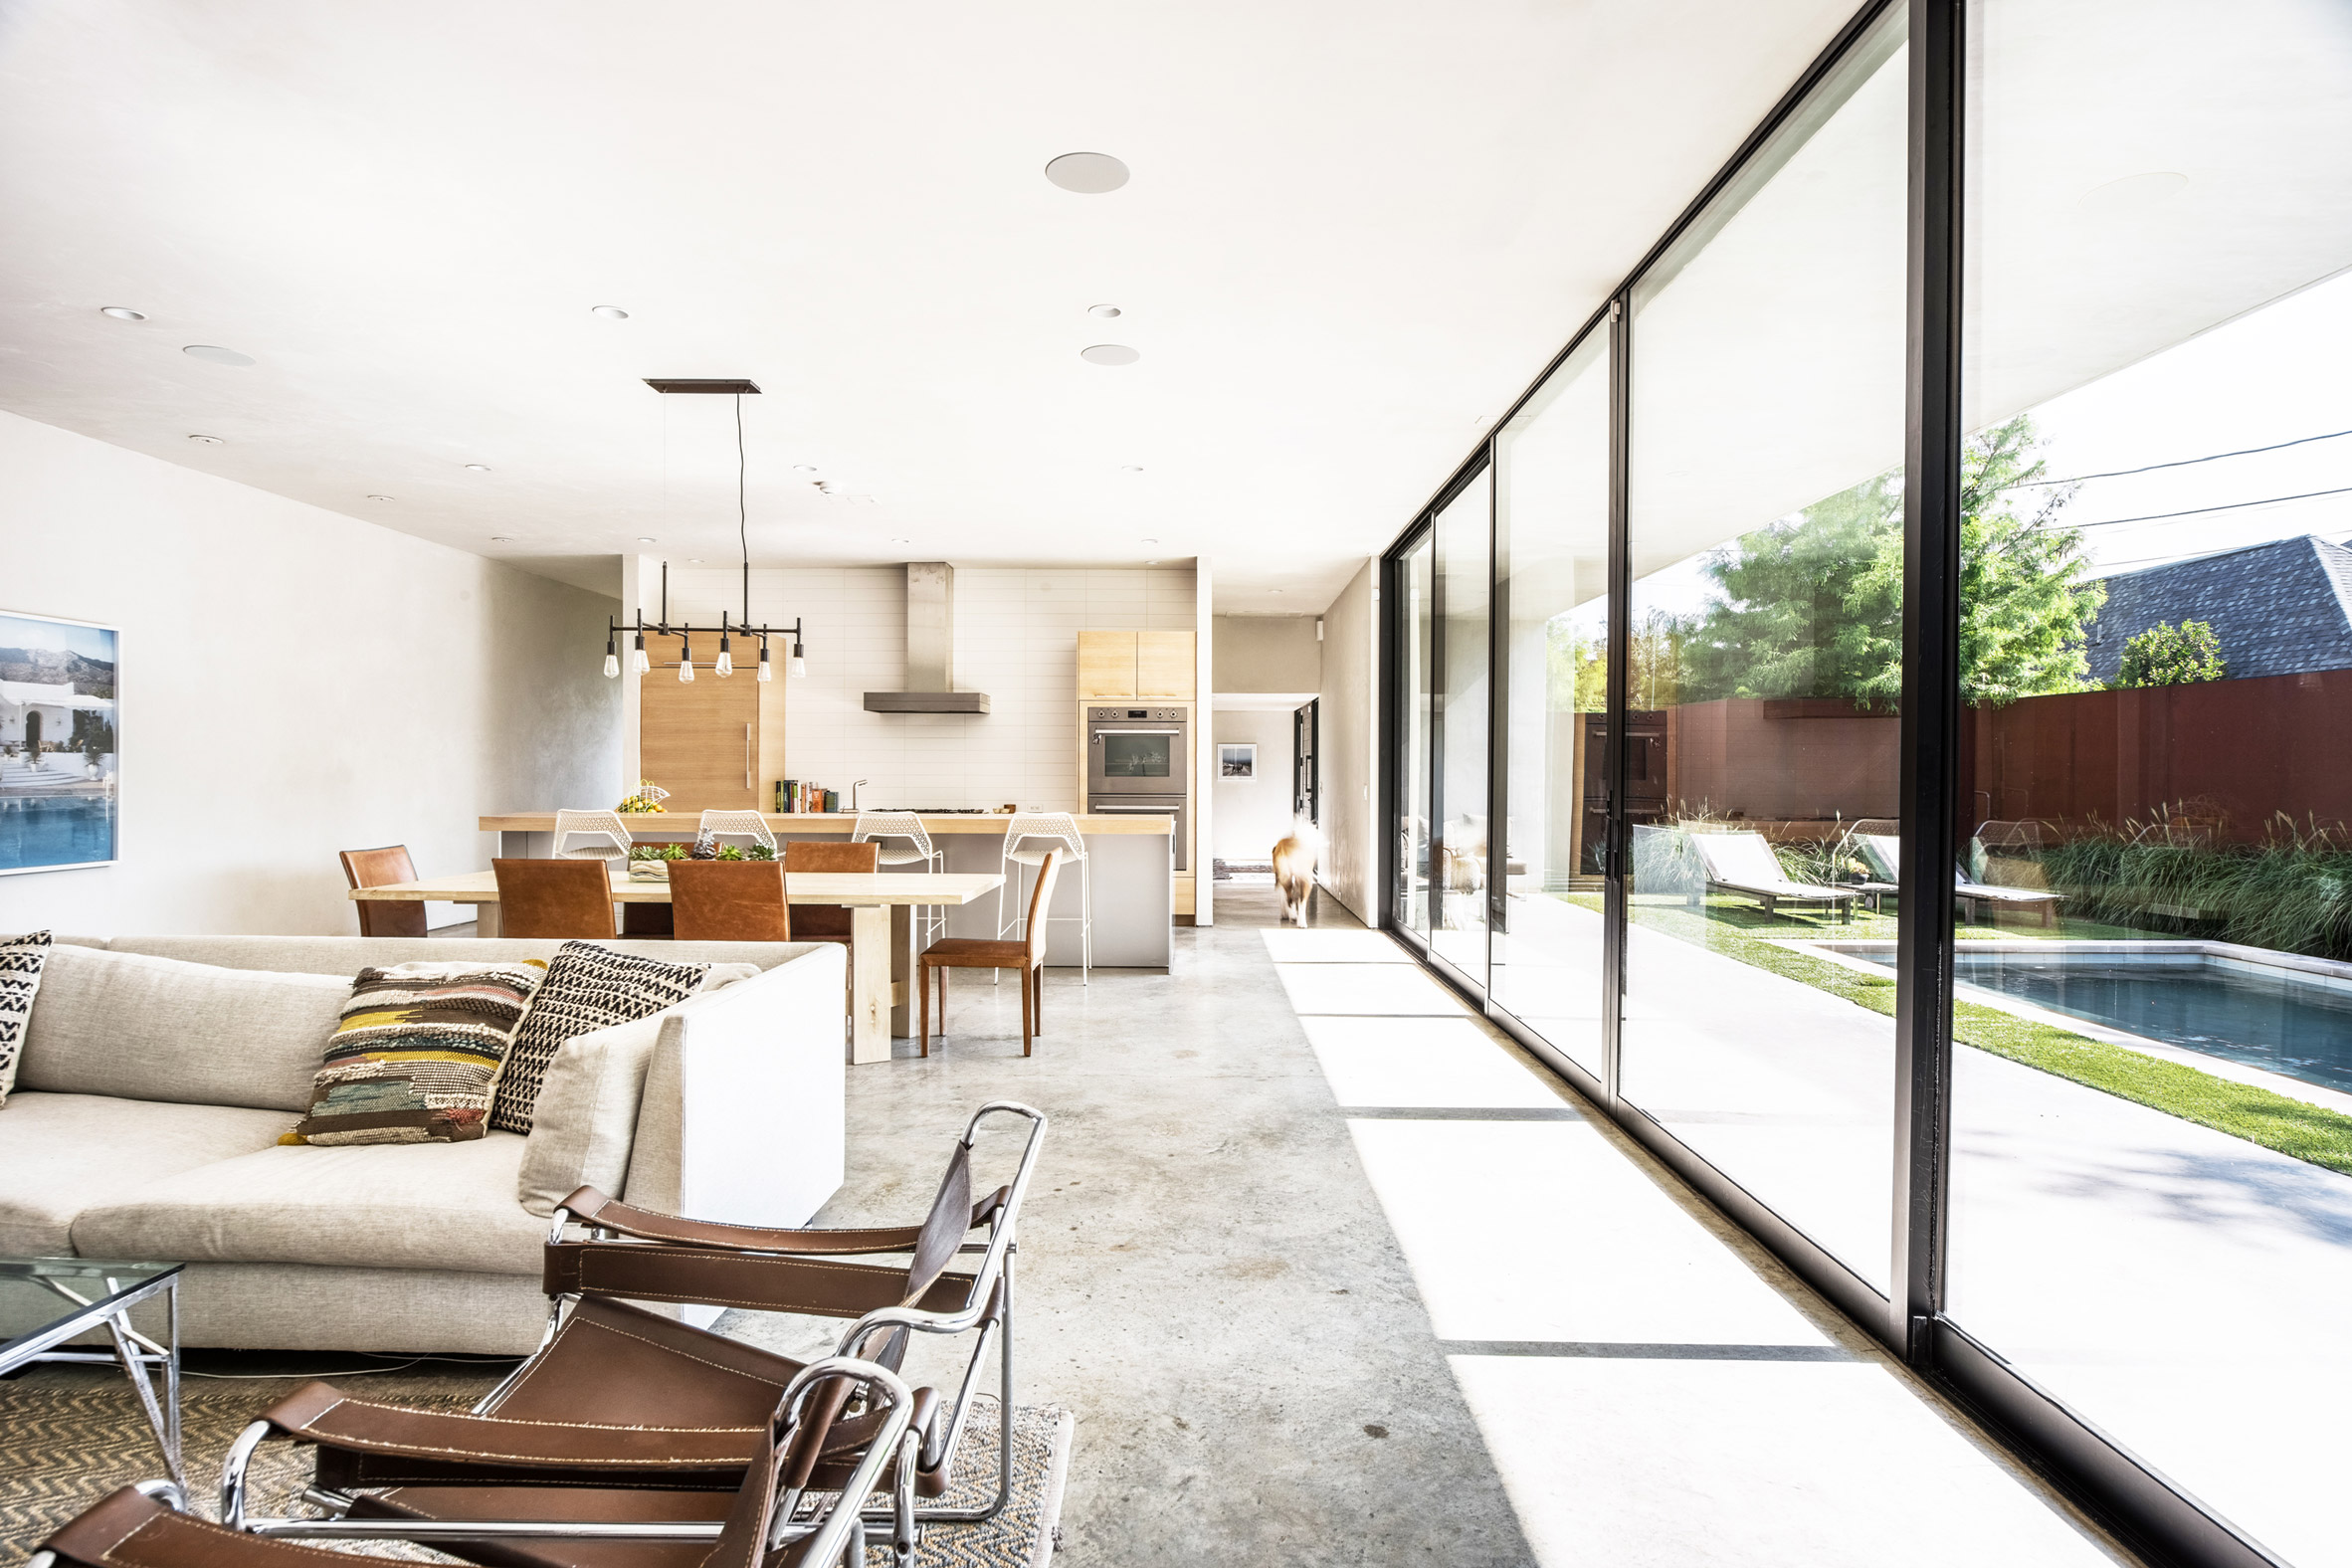 BV1 Residence by Wernerfield Architecture